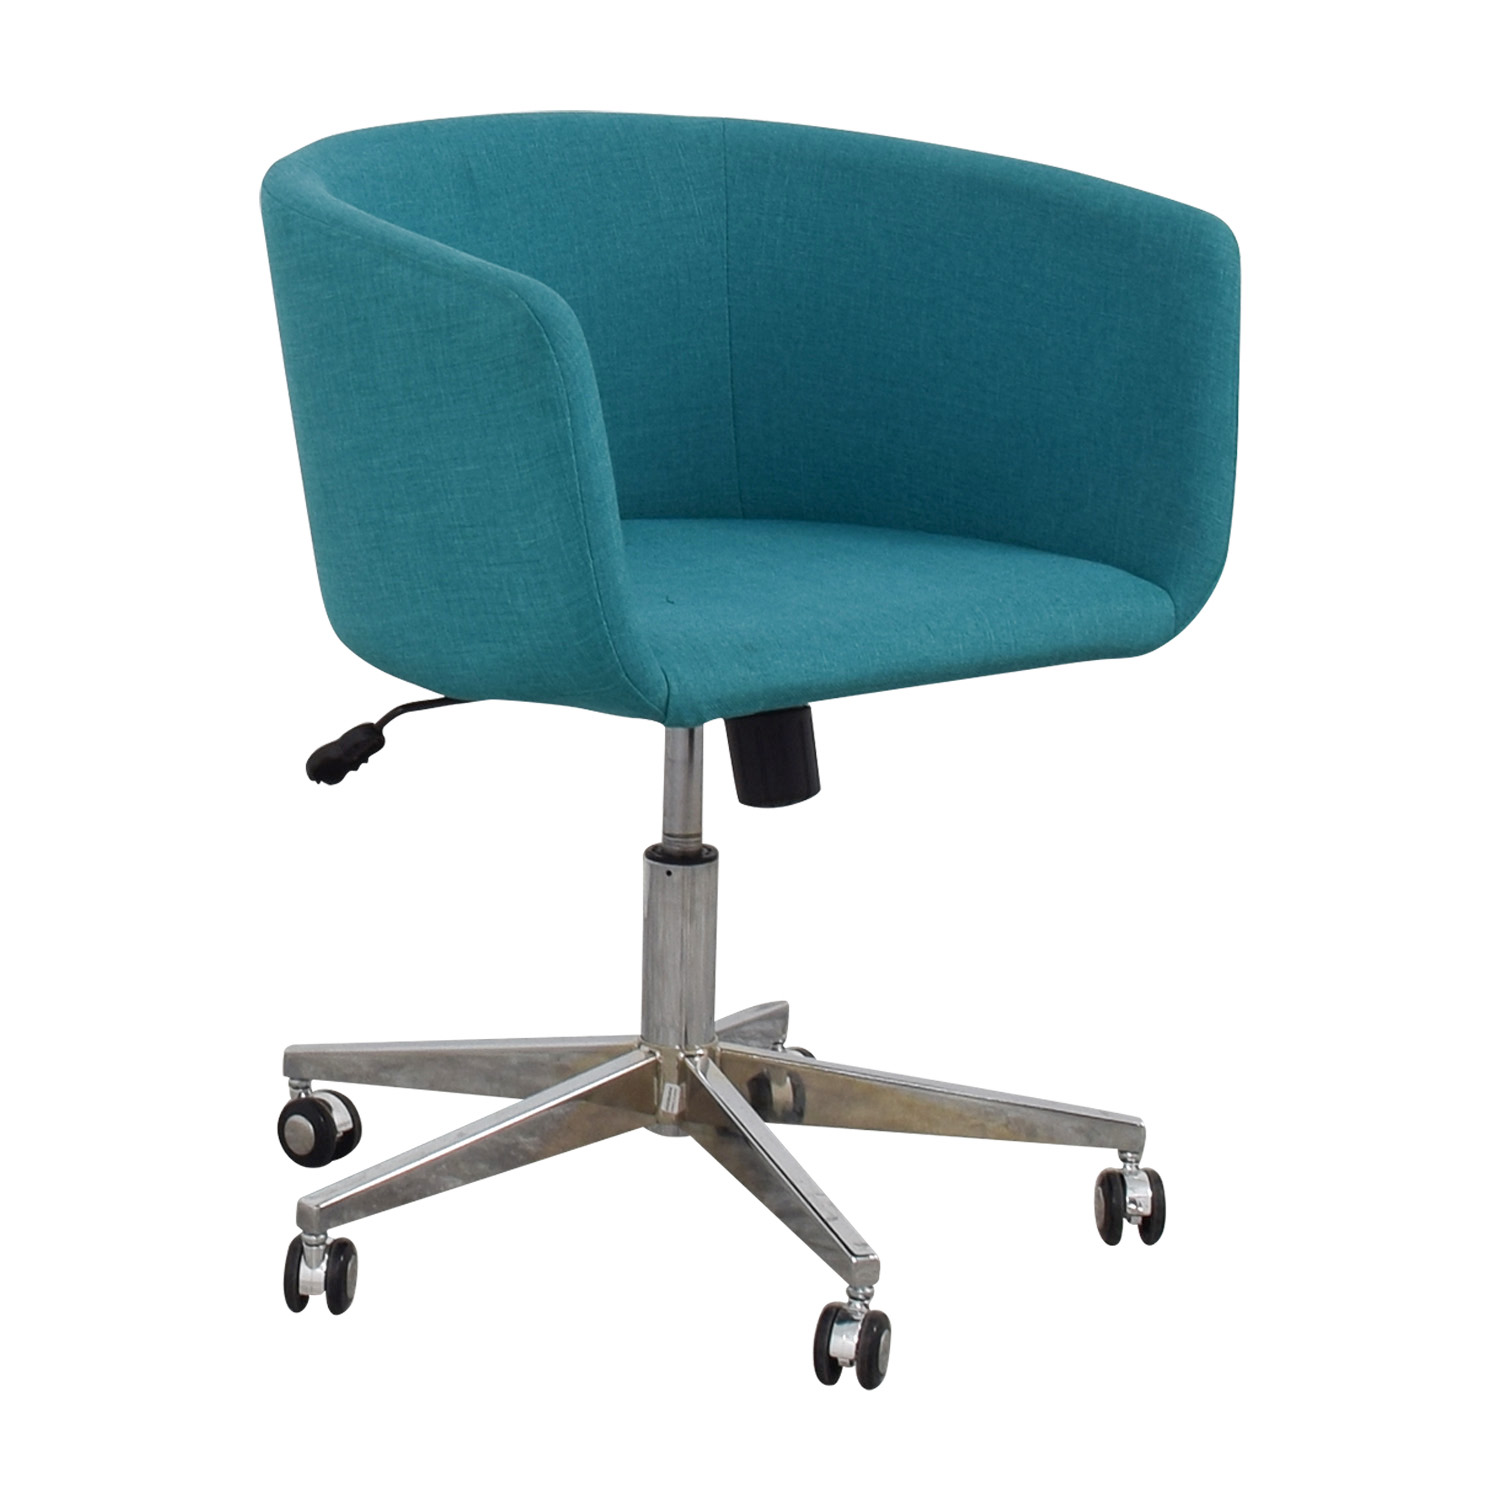 CB2 CB2 Teal Desk Chair with Castors nyc